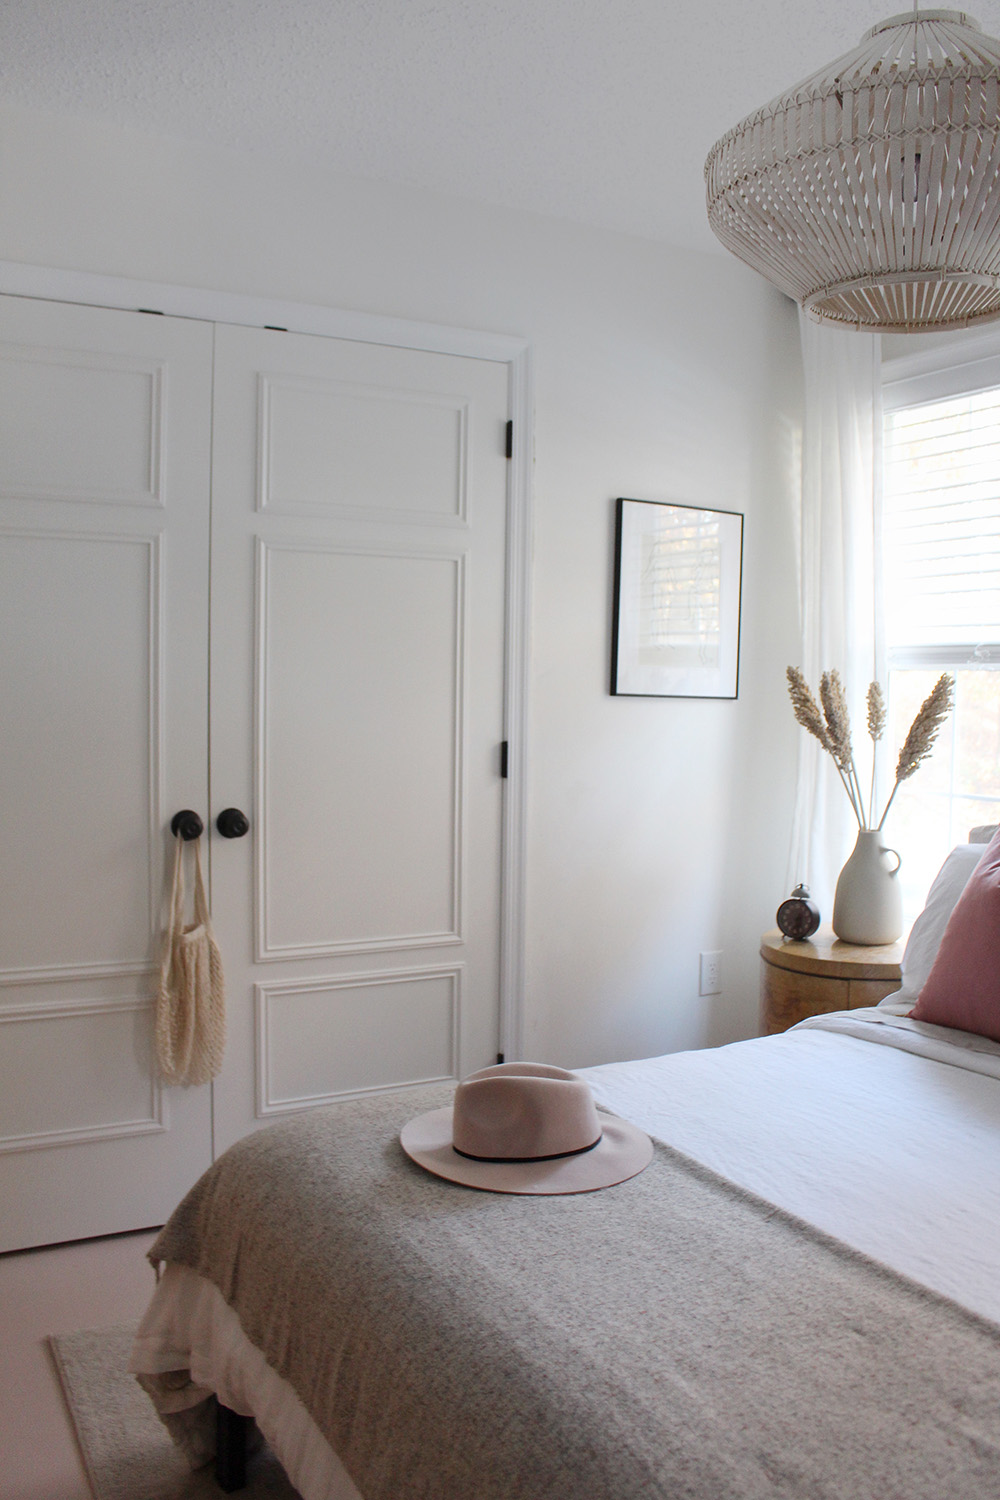 A bedroom updated with new DIY closet doors with black hardware.